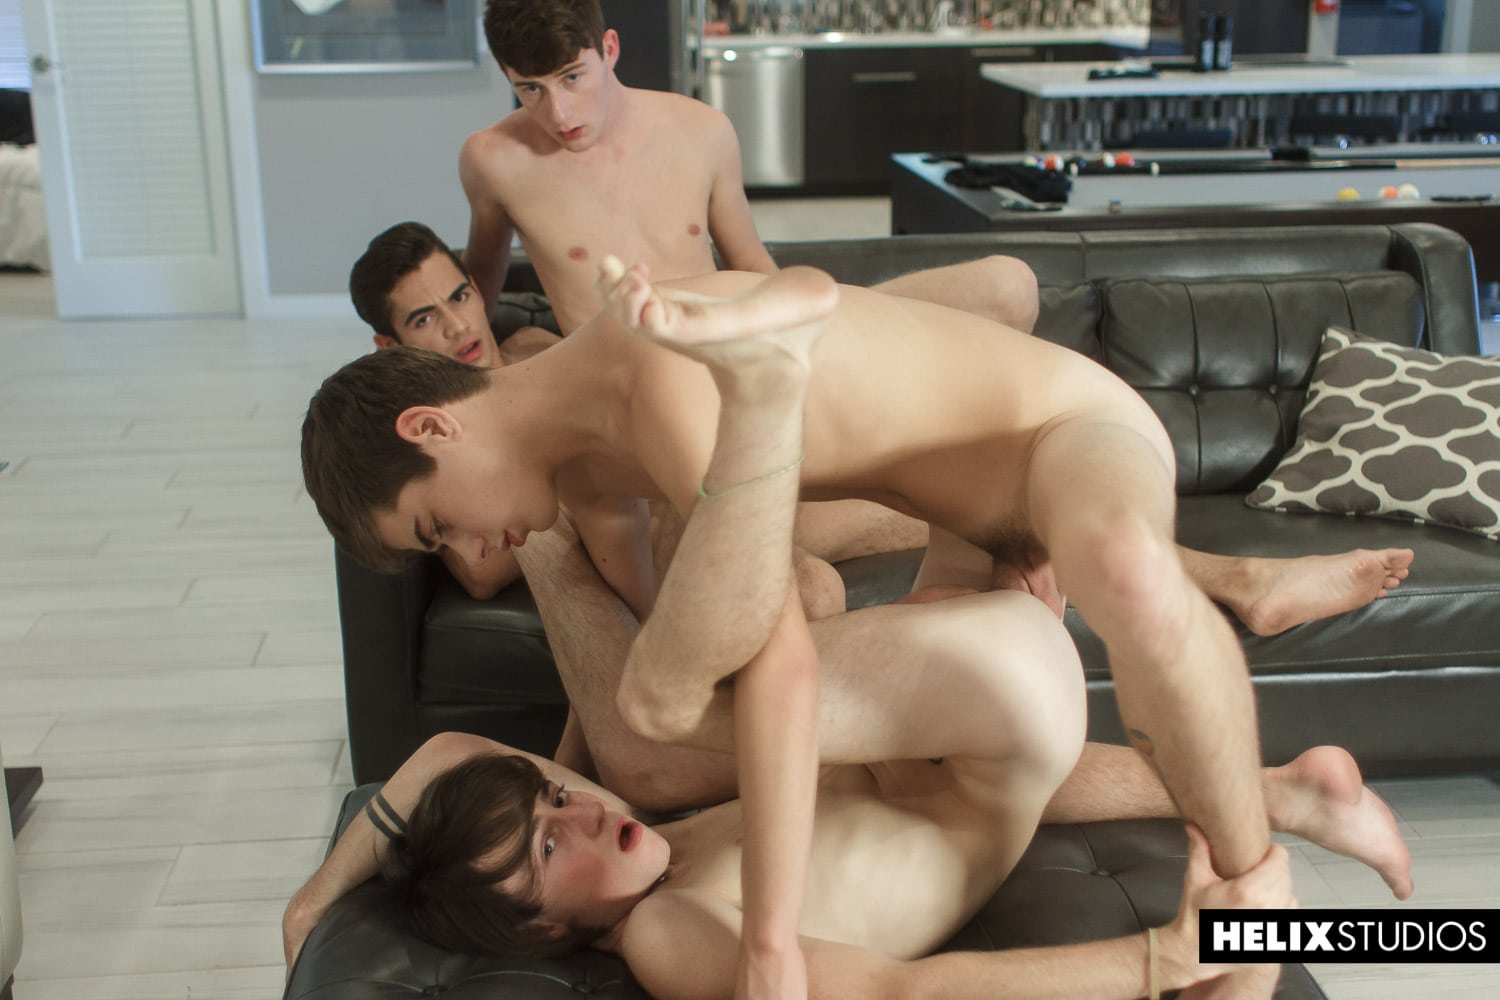 Four gay porn stars from the American porn site Helix Studios having an orgy.  American Gay Twinks